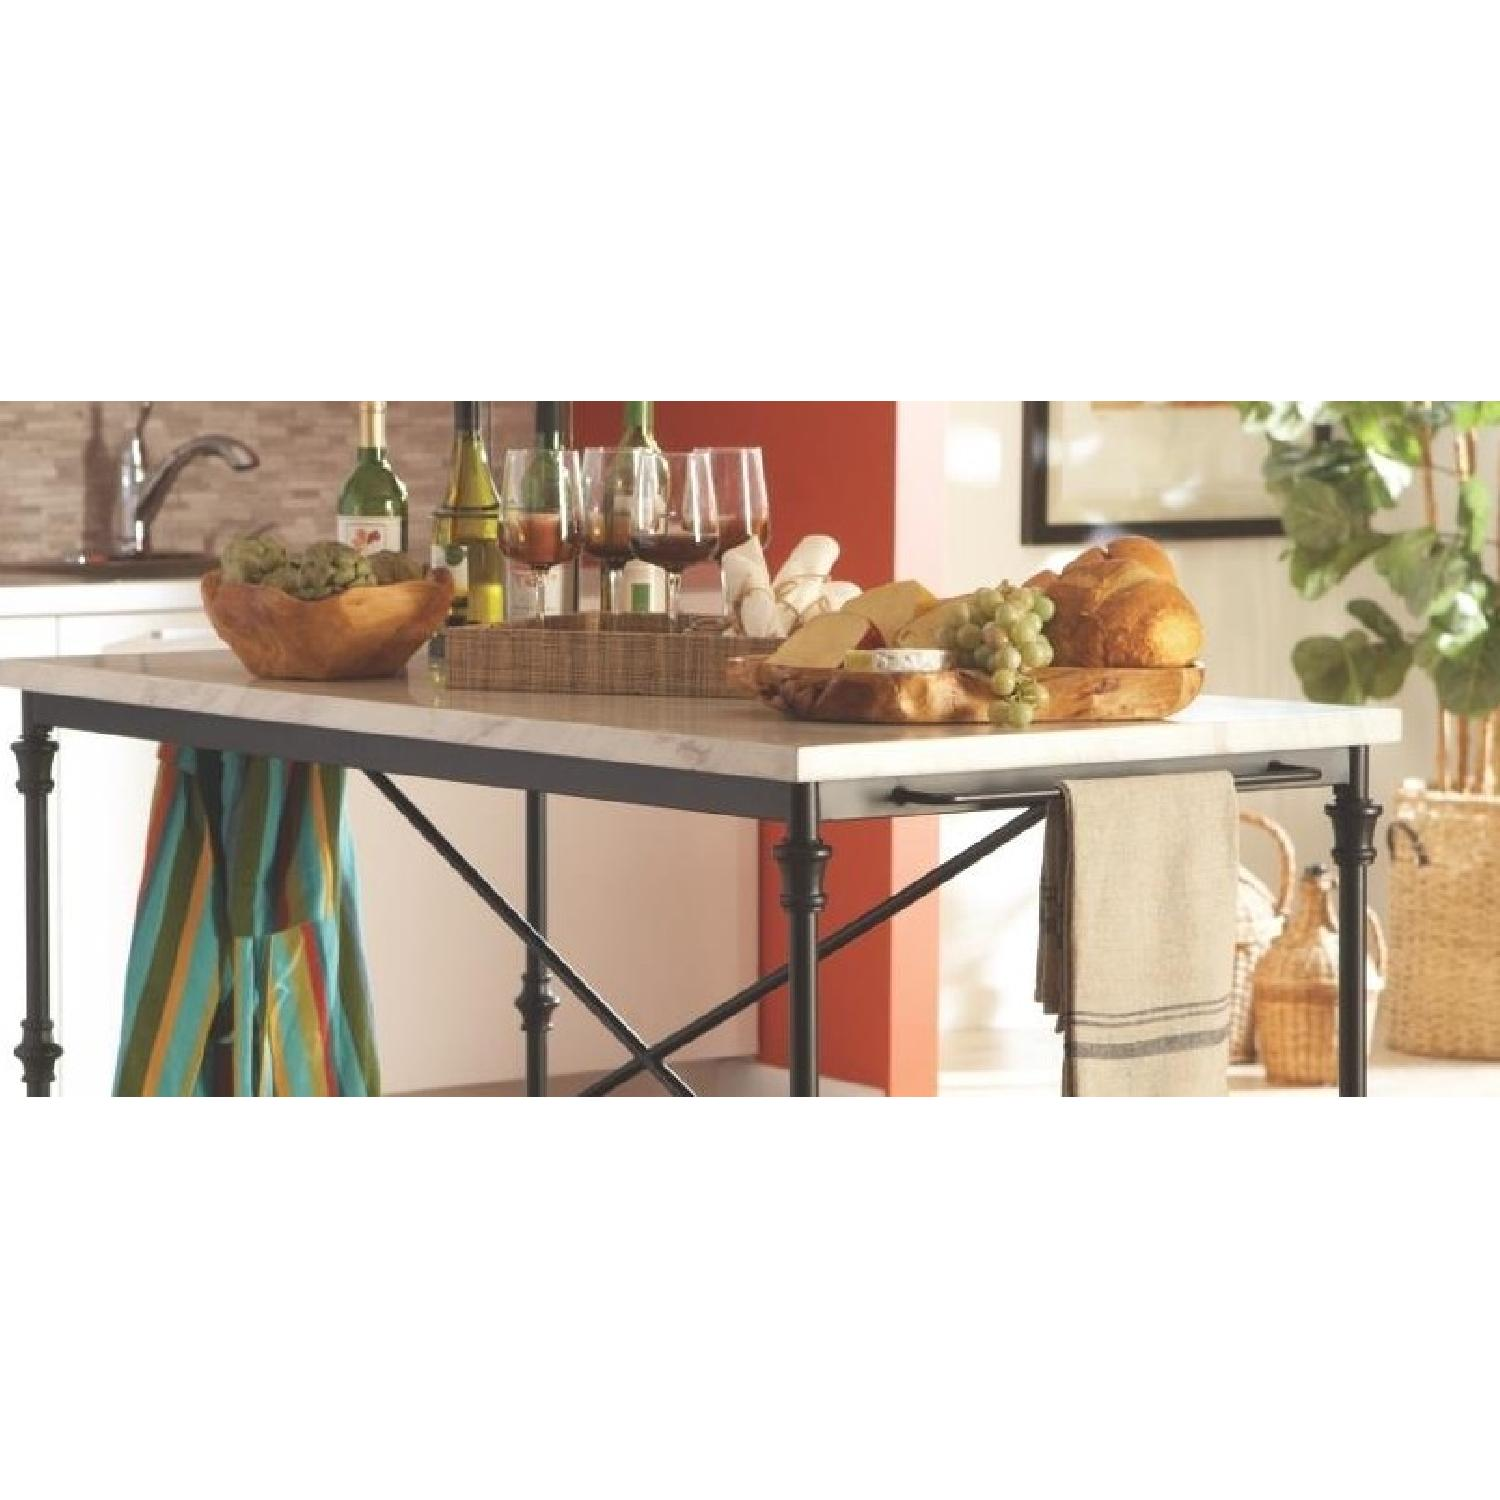 French Bistro Style Counter Height Kitchen Island - AptDeco